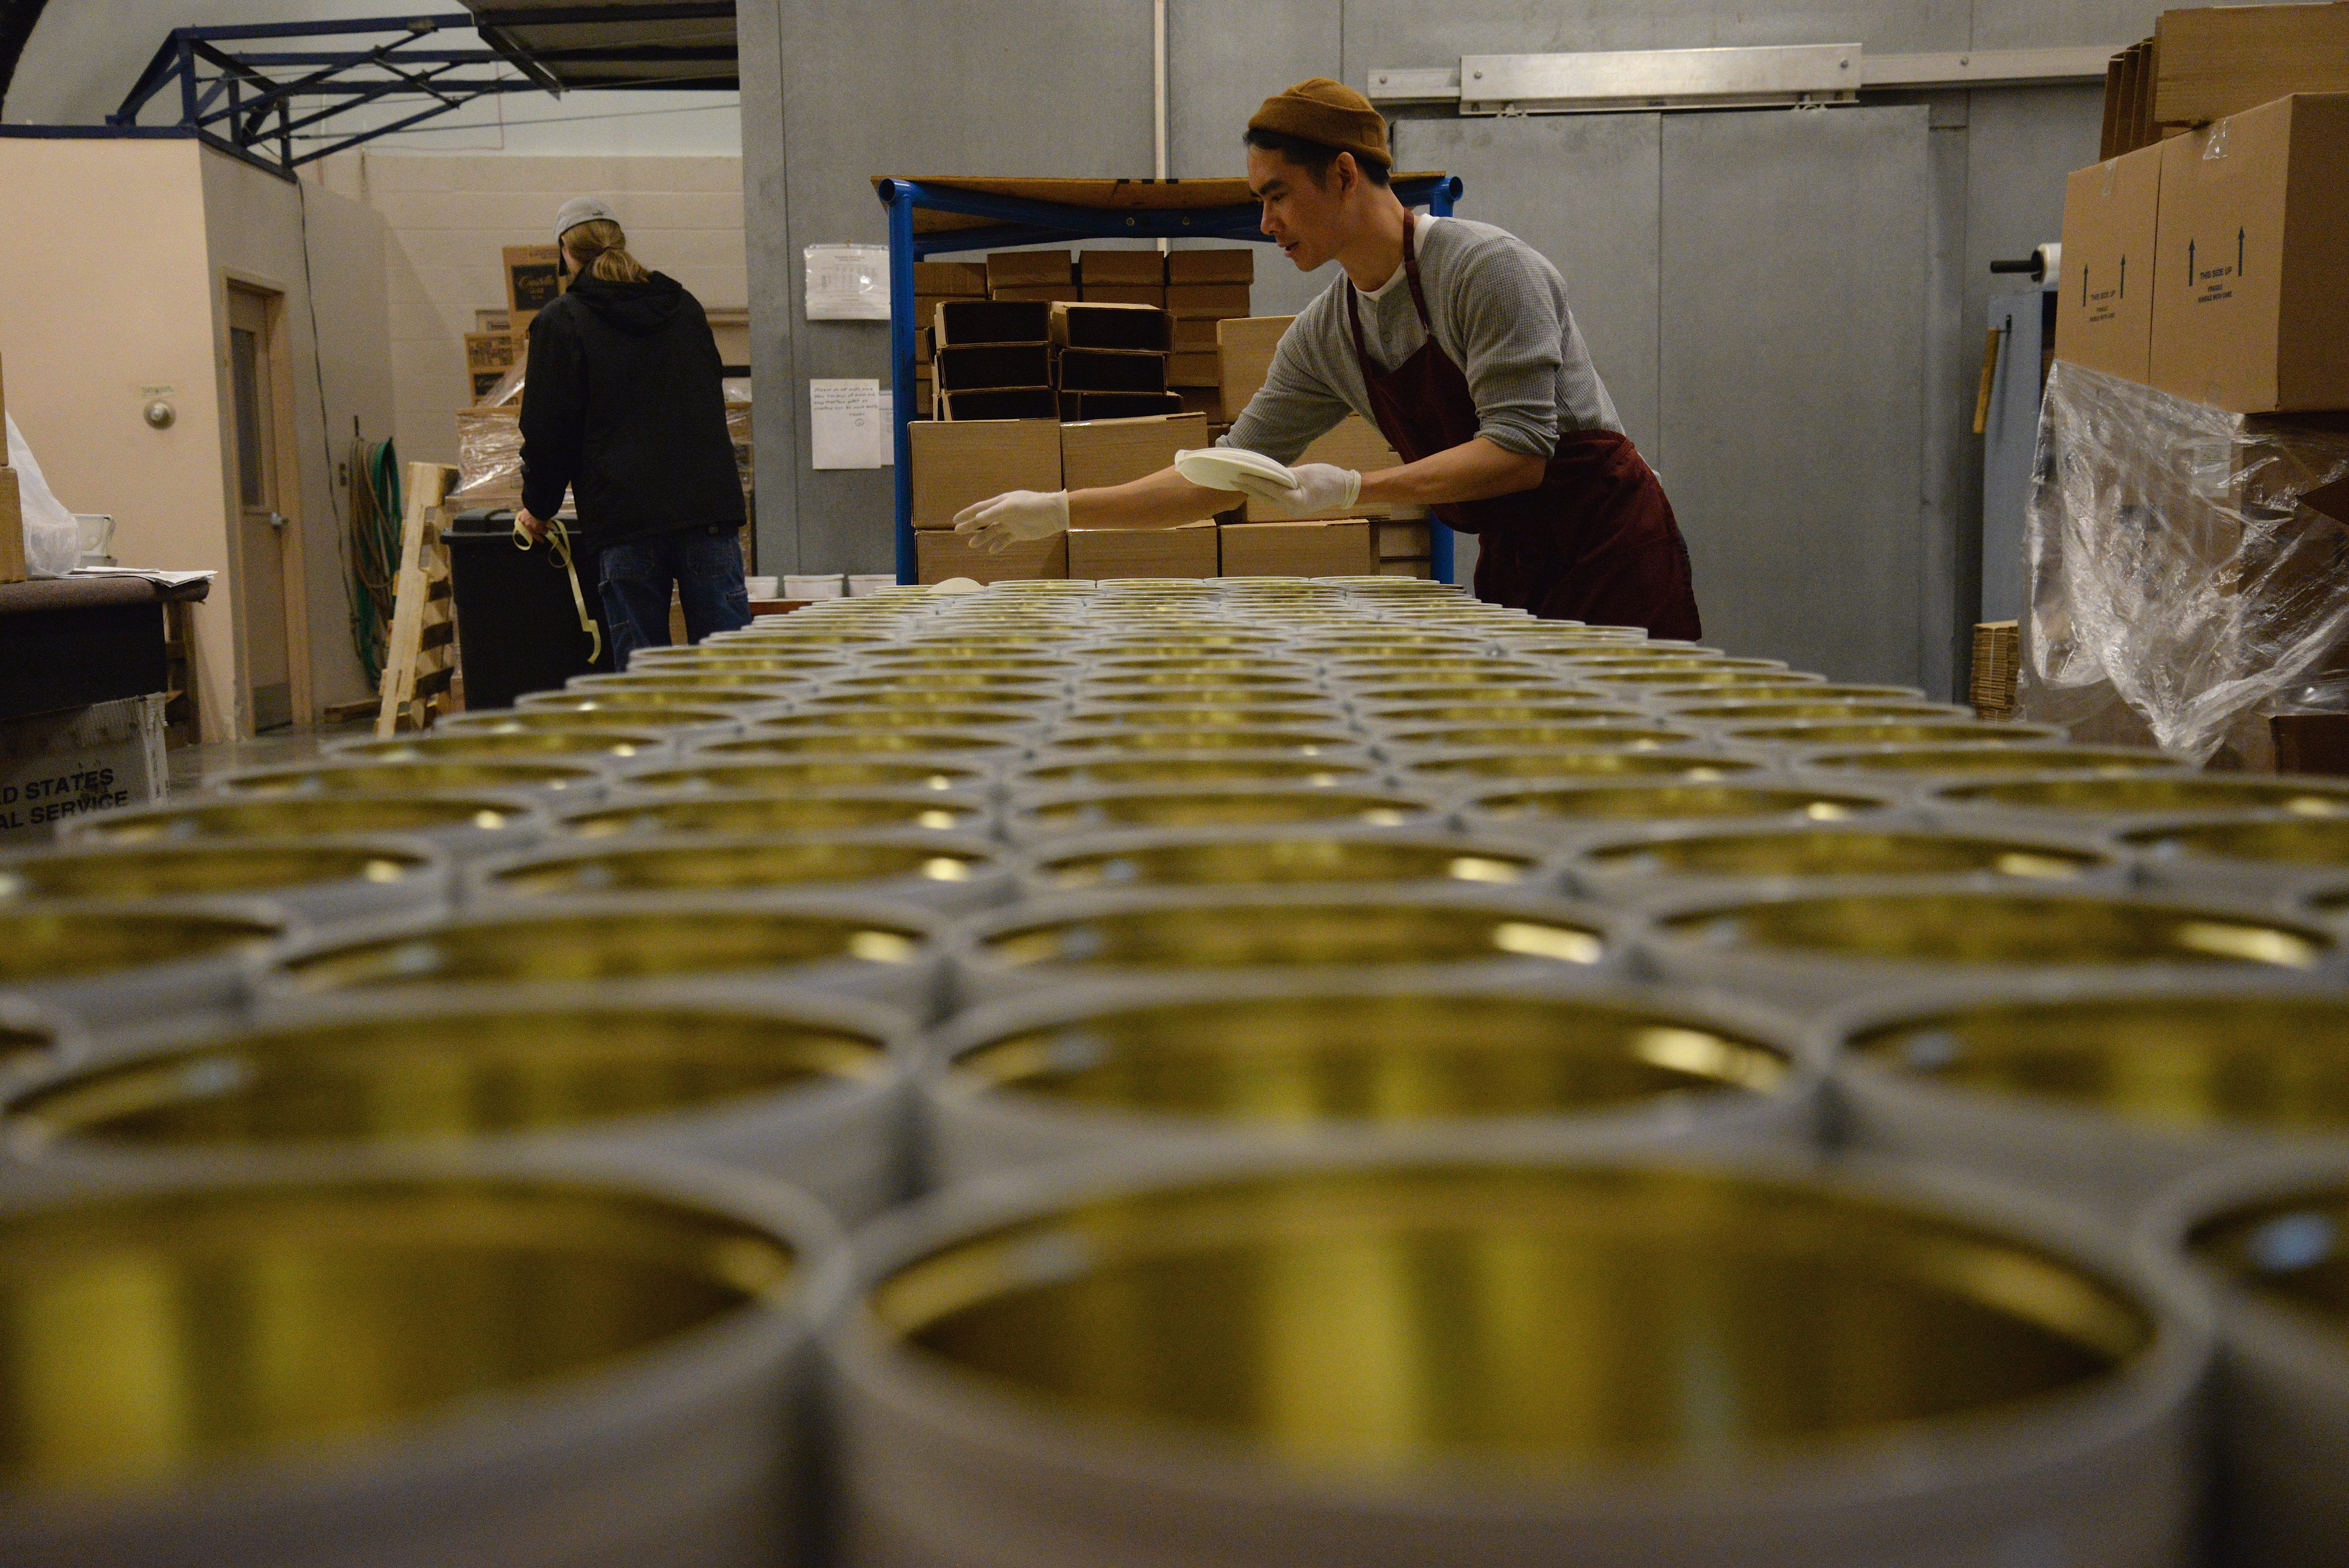 Man looking across rows of tins